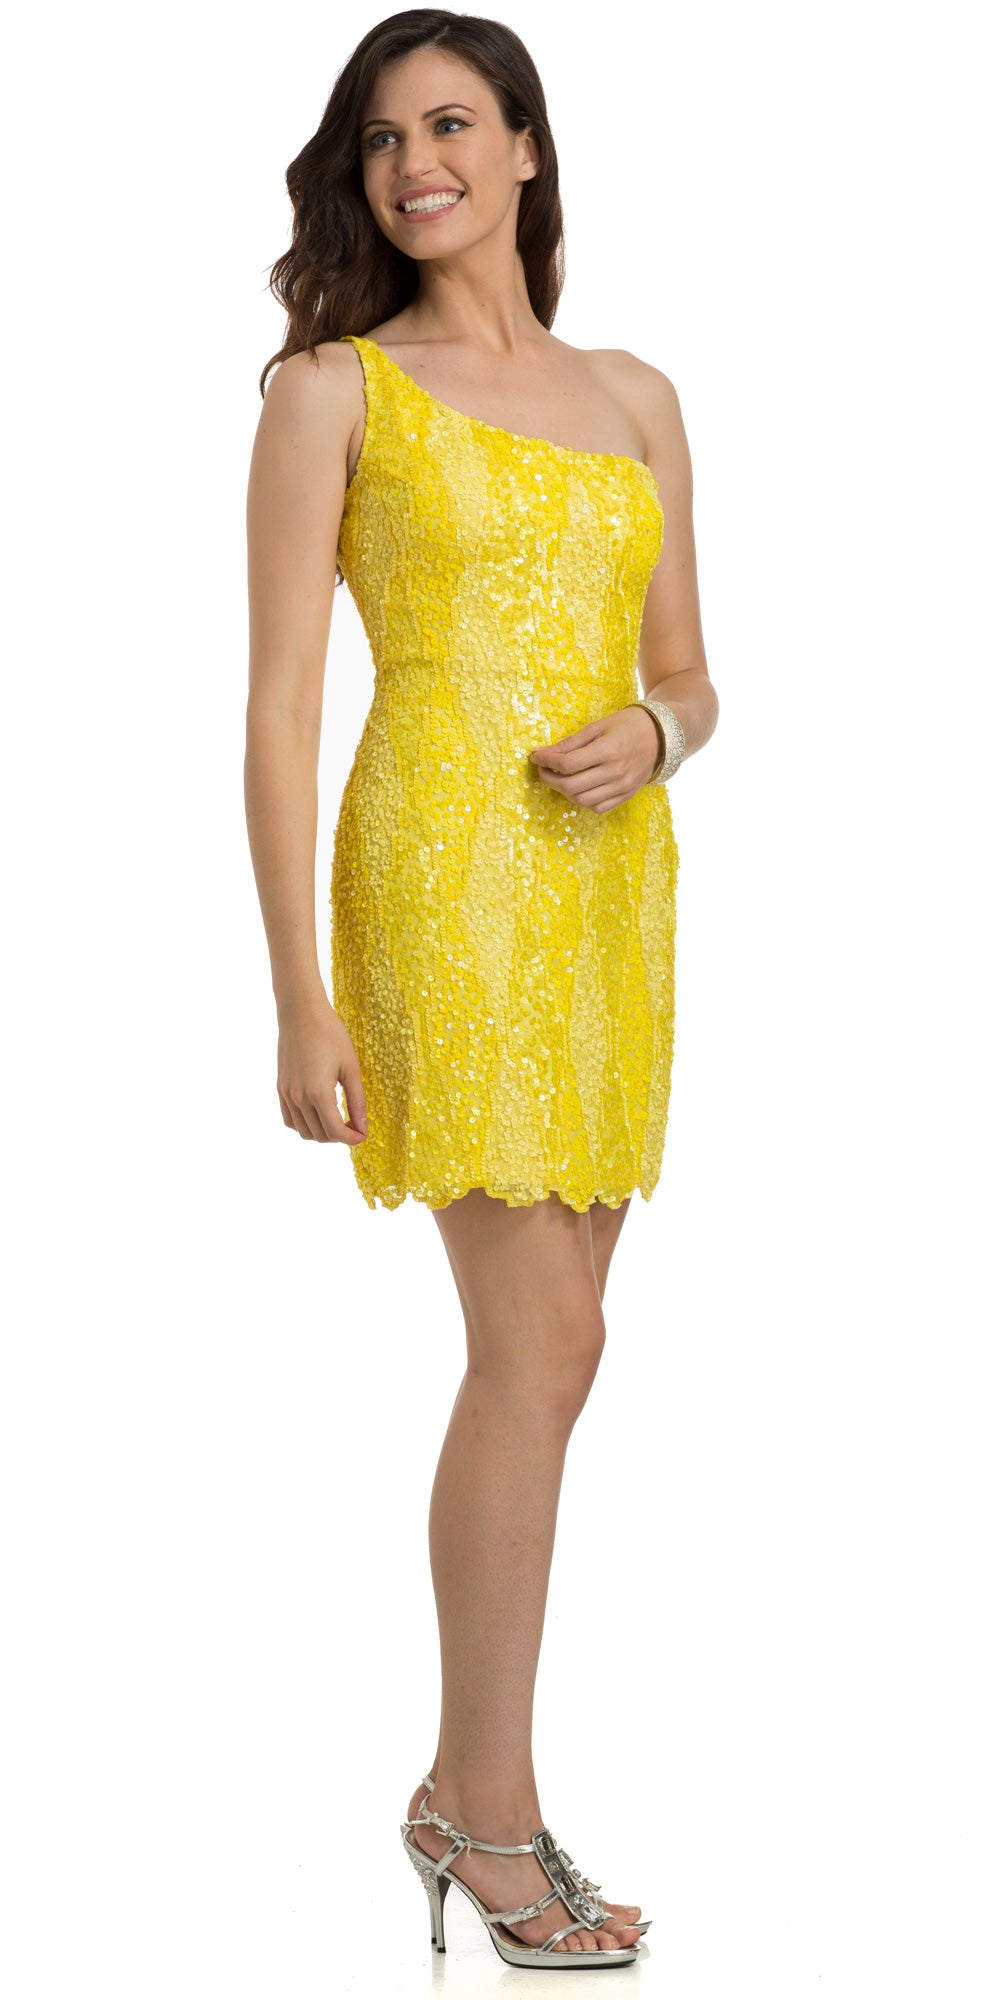 Main image of One Shoulder Two Tone Dress With Asymetical Hemline